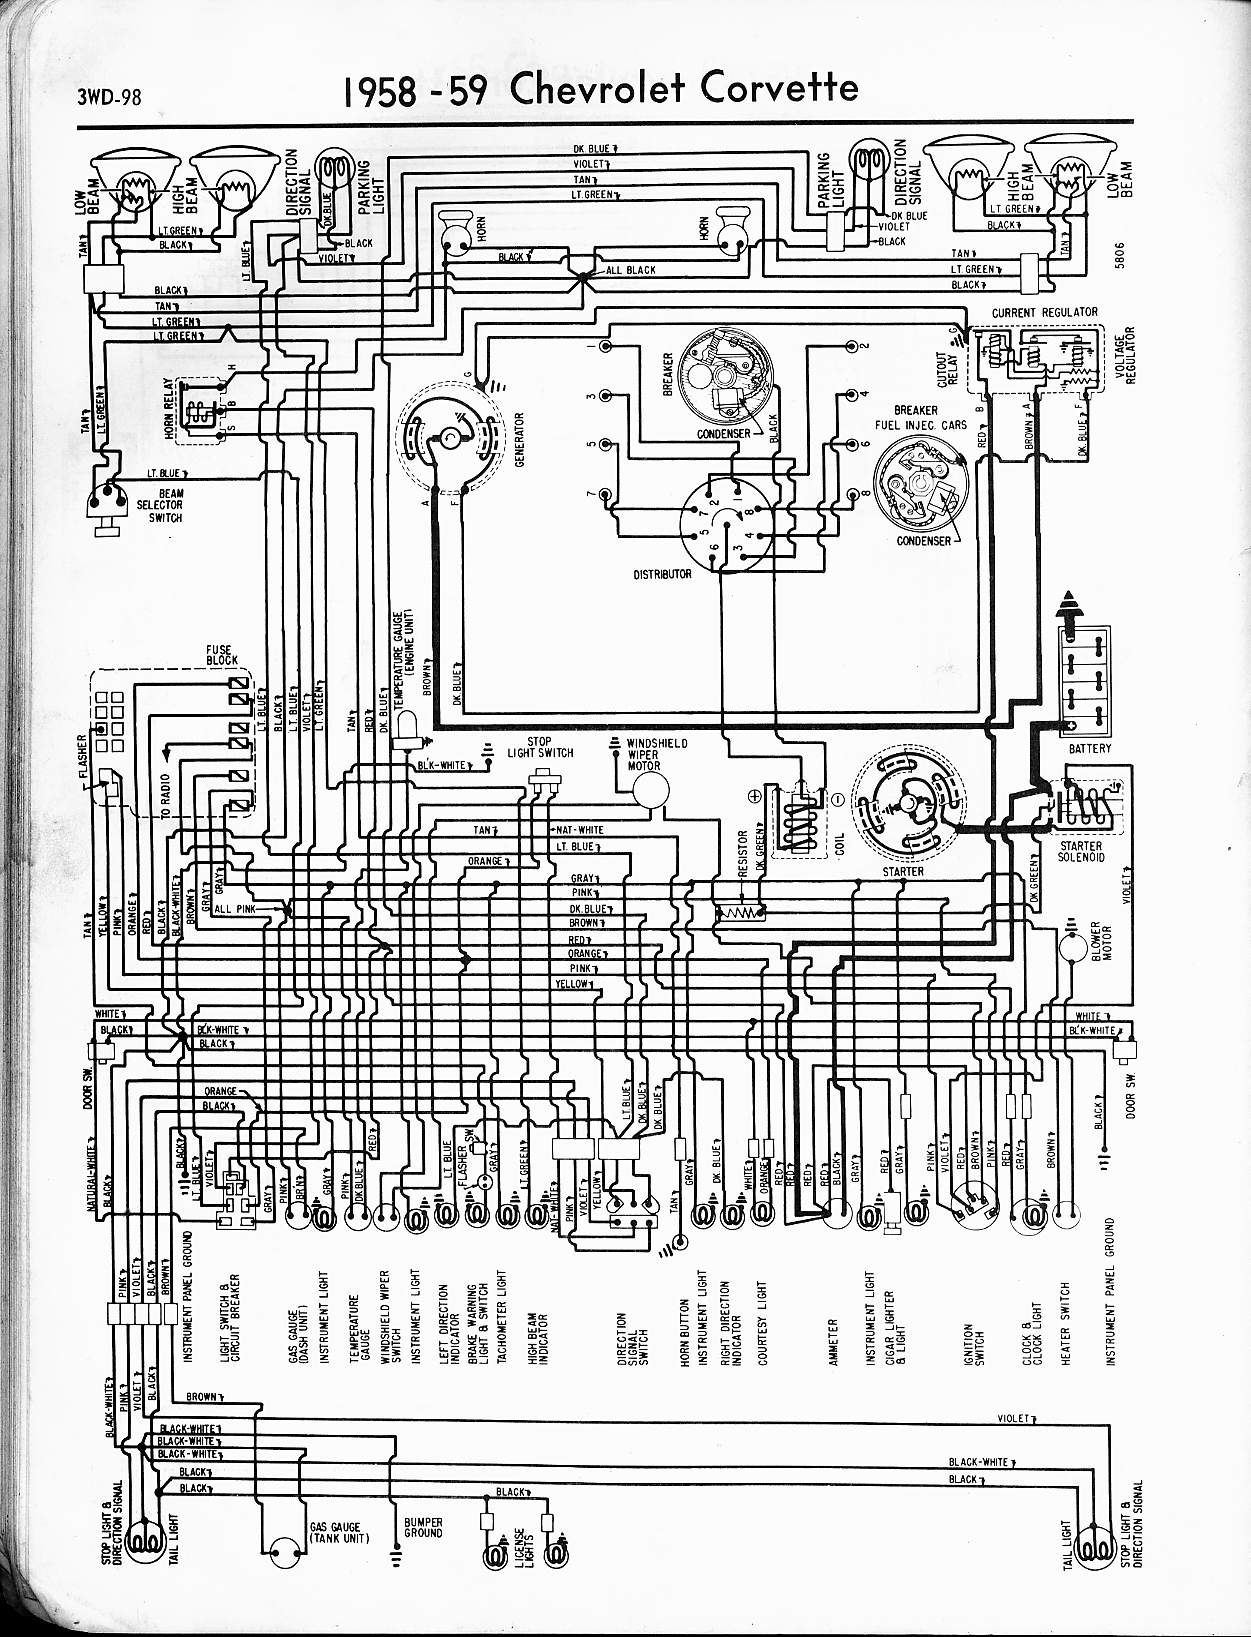 1969 chevelle engine wiring diagram along with of wiring library c3 corvette ignition wiring 57 65 chevy wiring diagrams 1969 chevelle wiring diagram 1965 chevelle wiring diagram